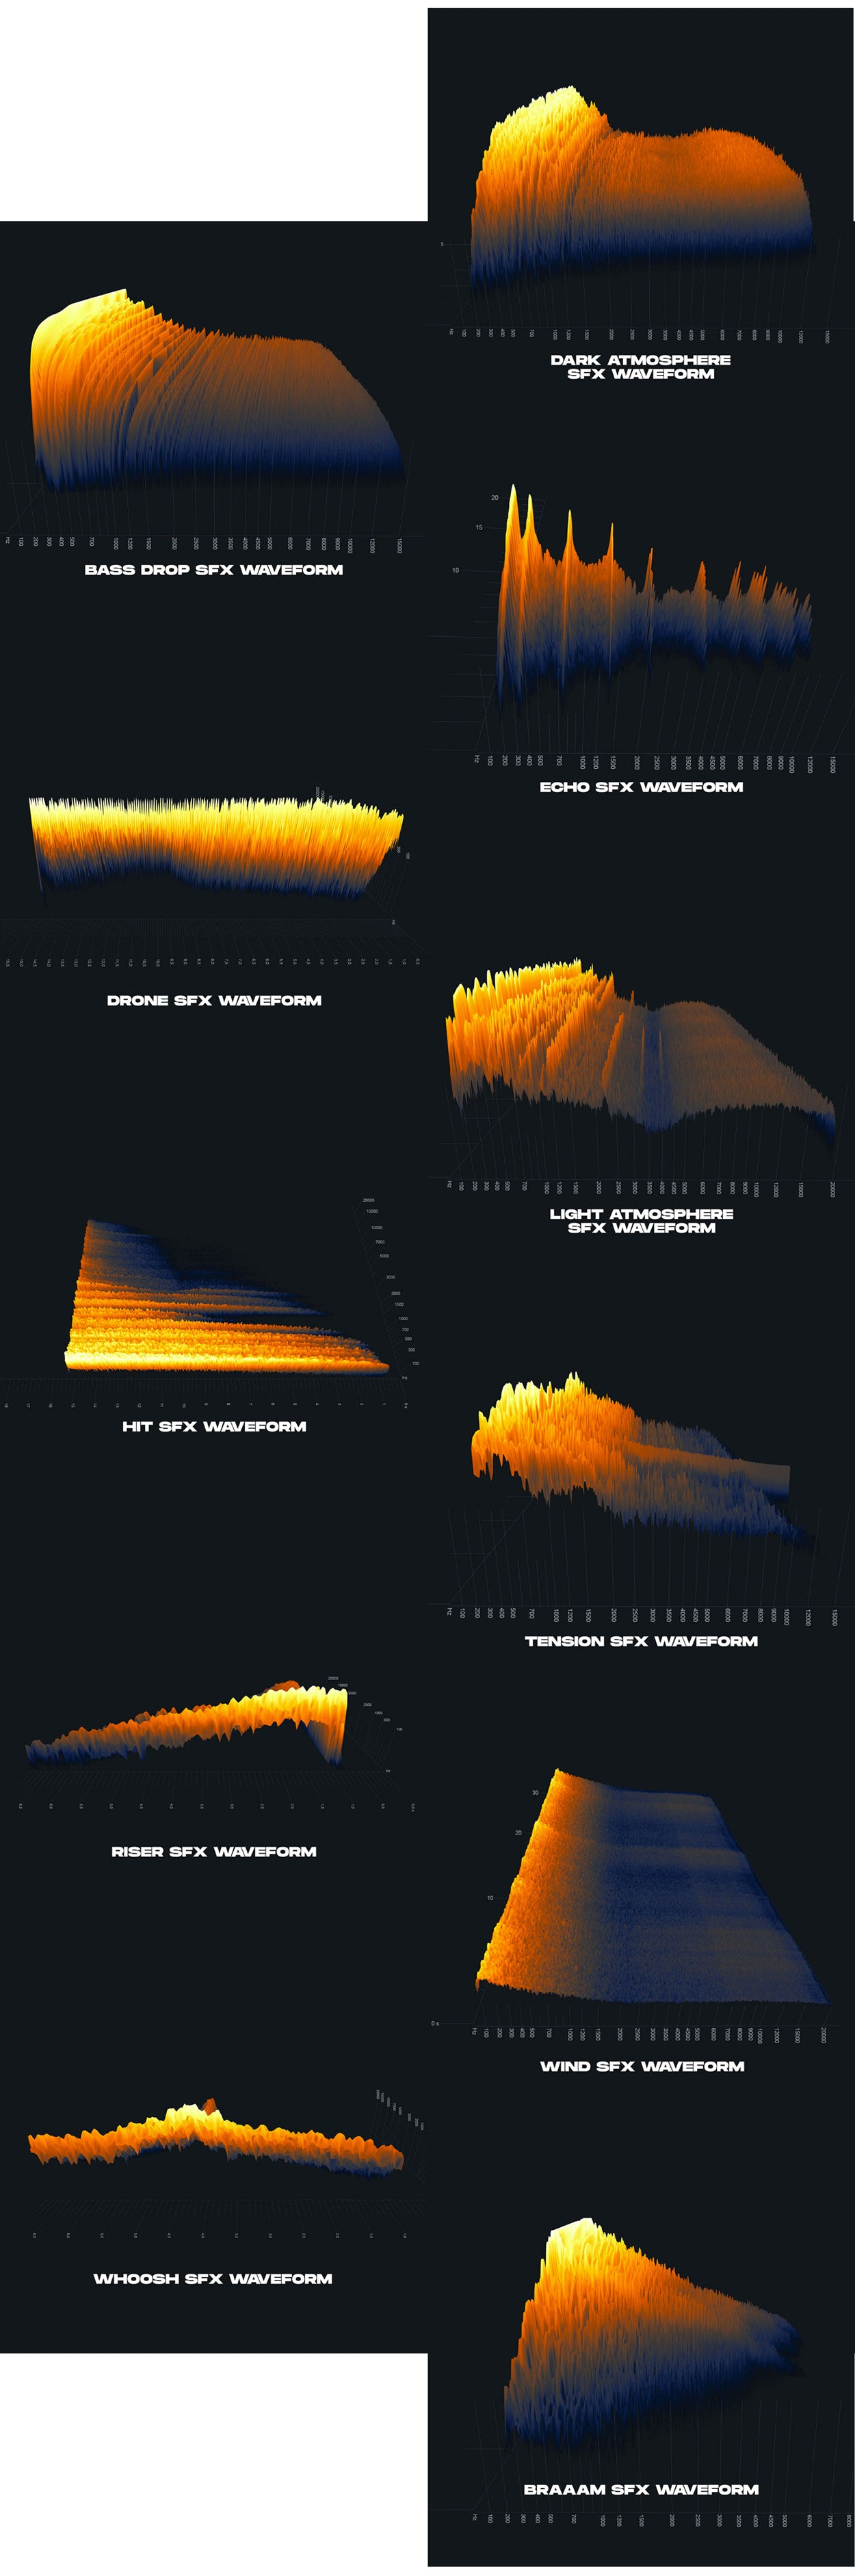 cinematic sound effect soundwaves